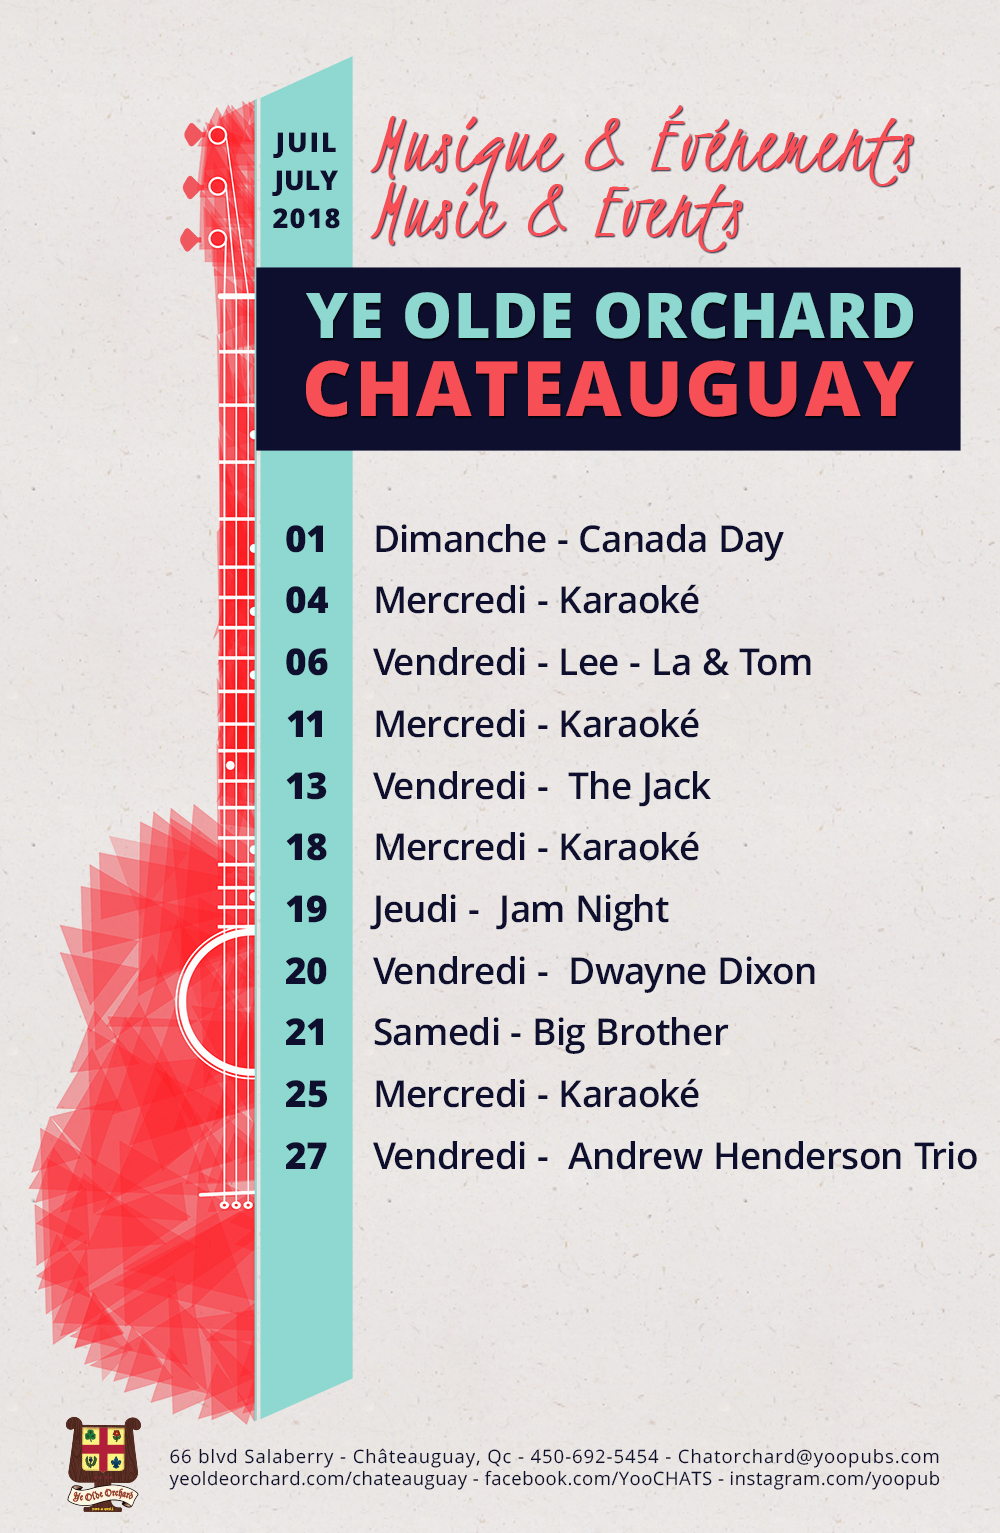 ye-olde-orchard-pub-music-and-events-calendar-chateauguay-july-2018-WEB-2